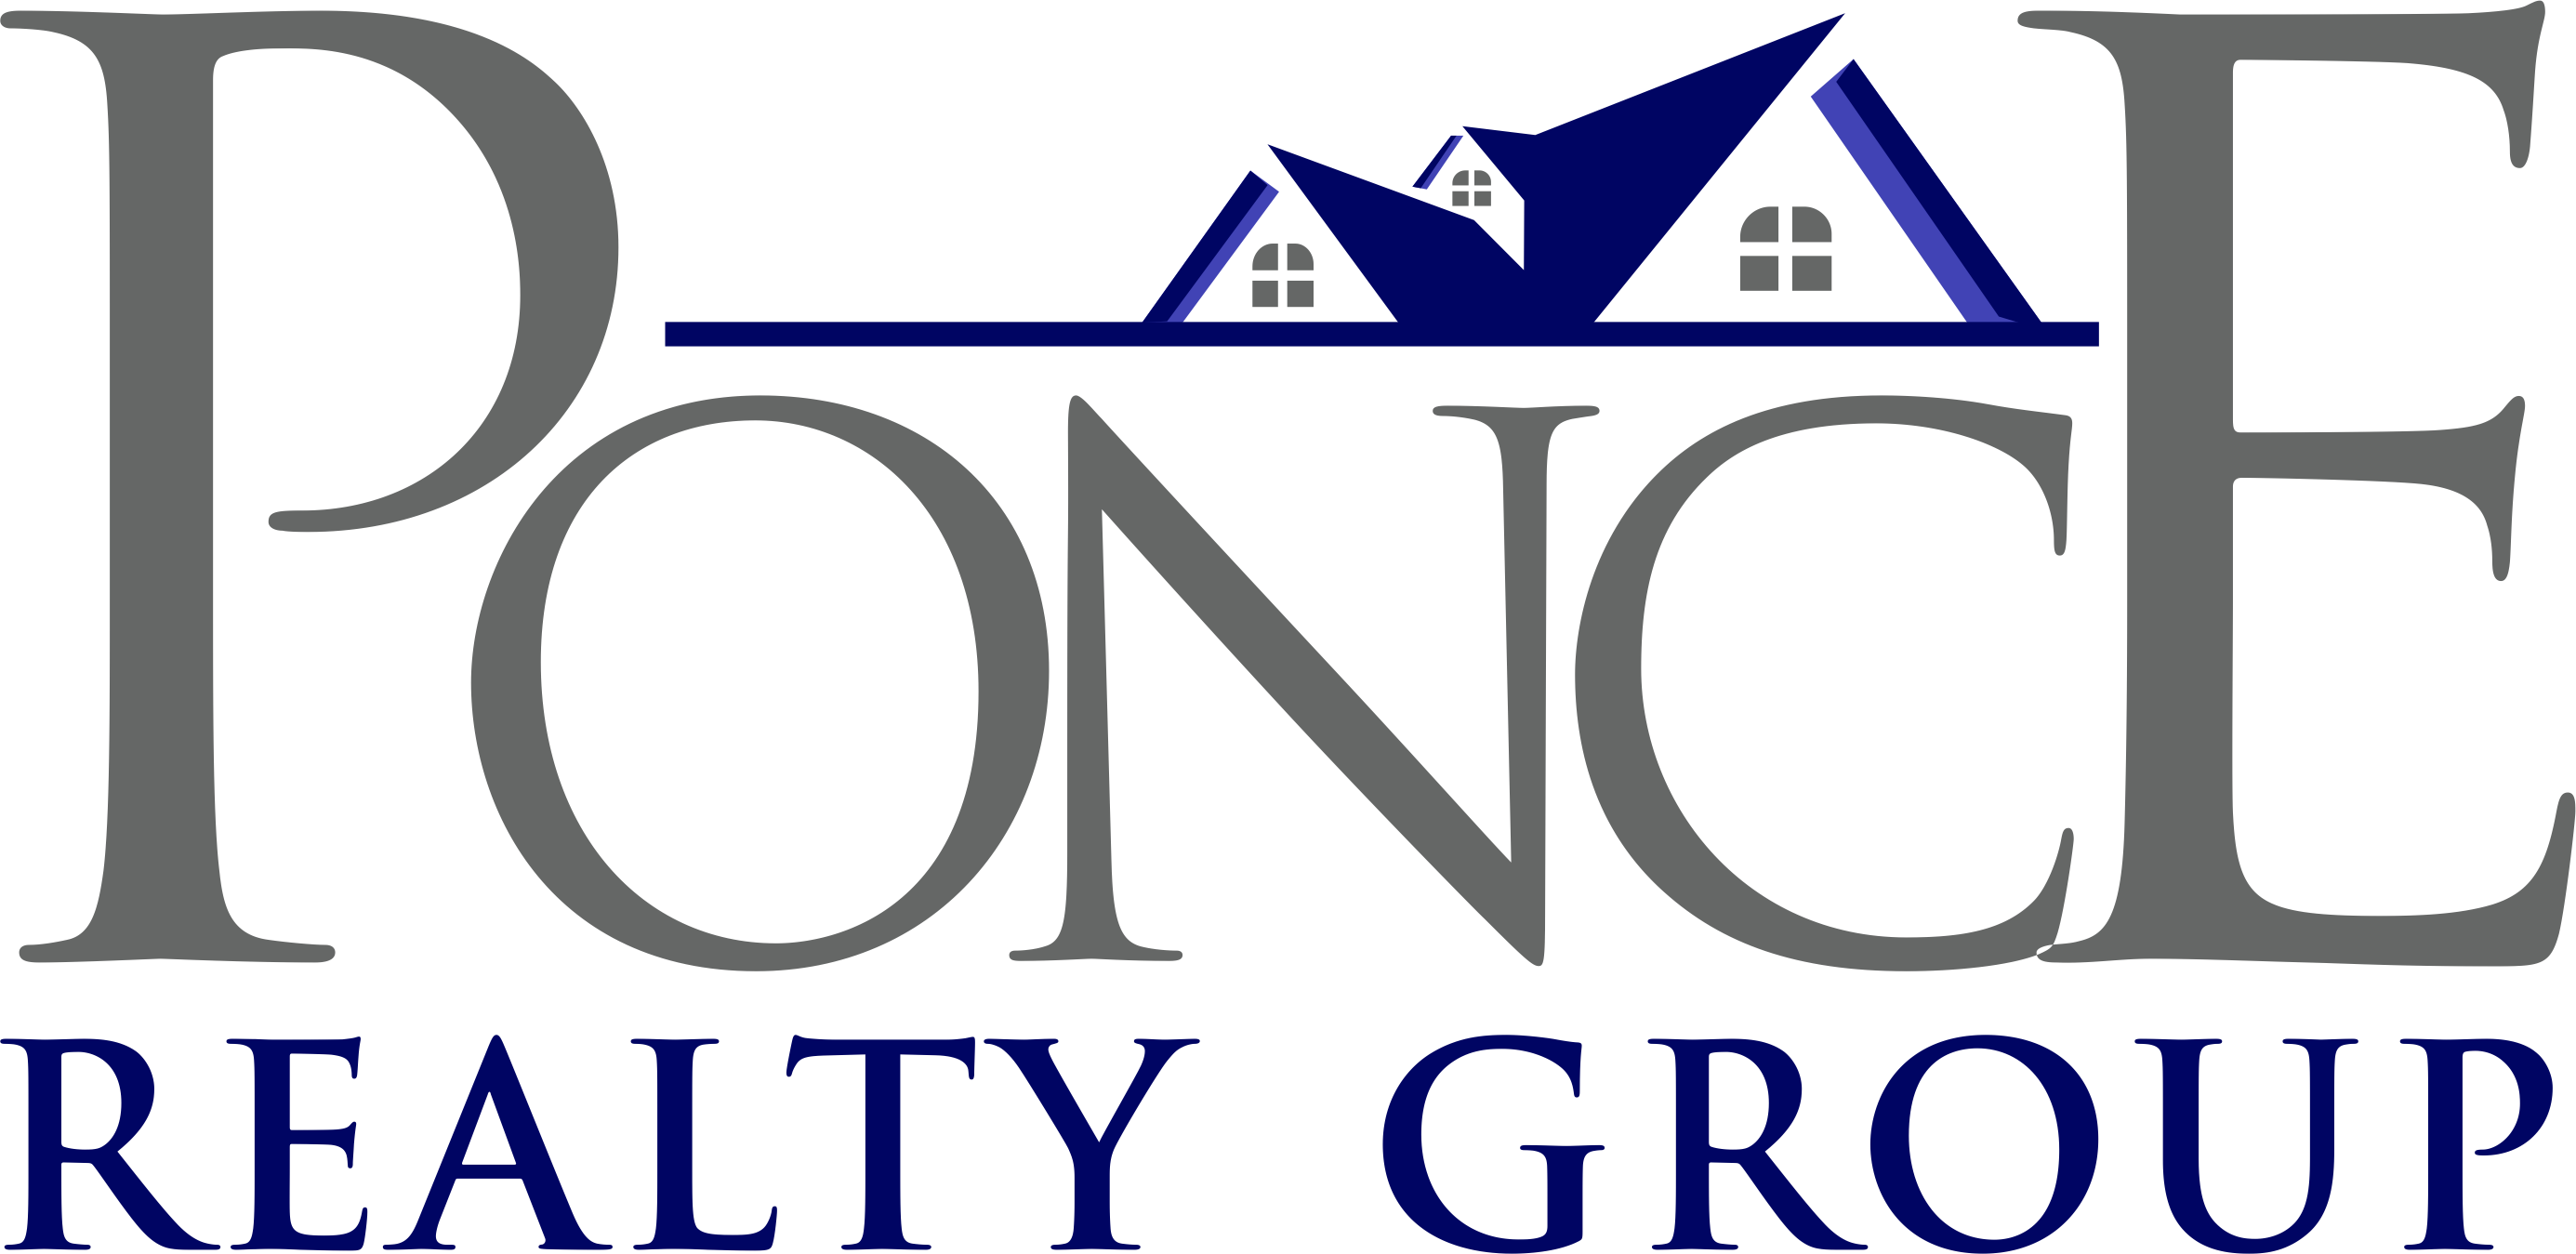 Ponce Realty Group